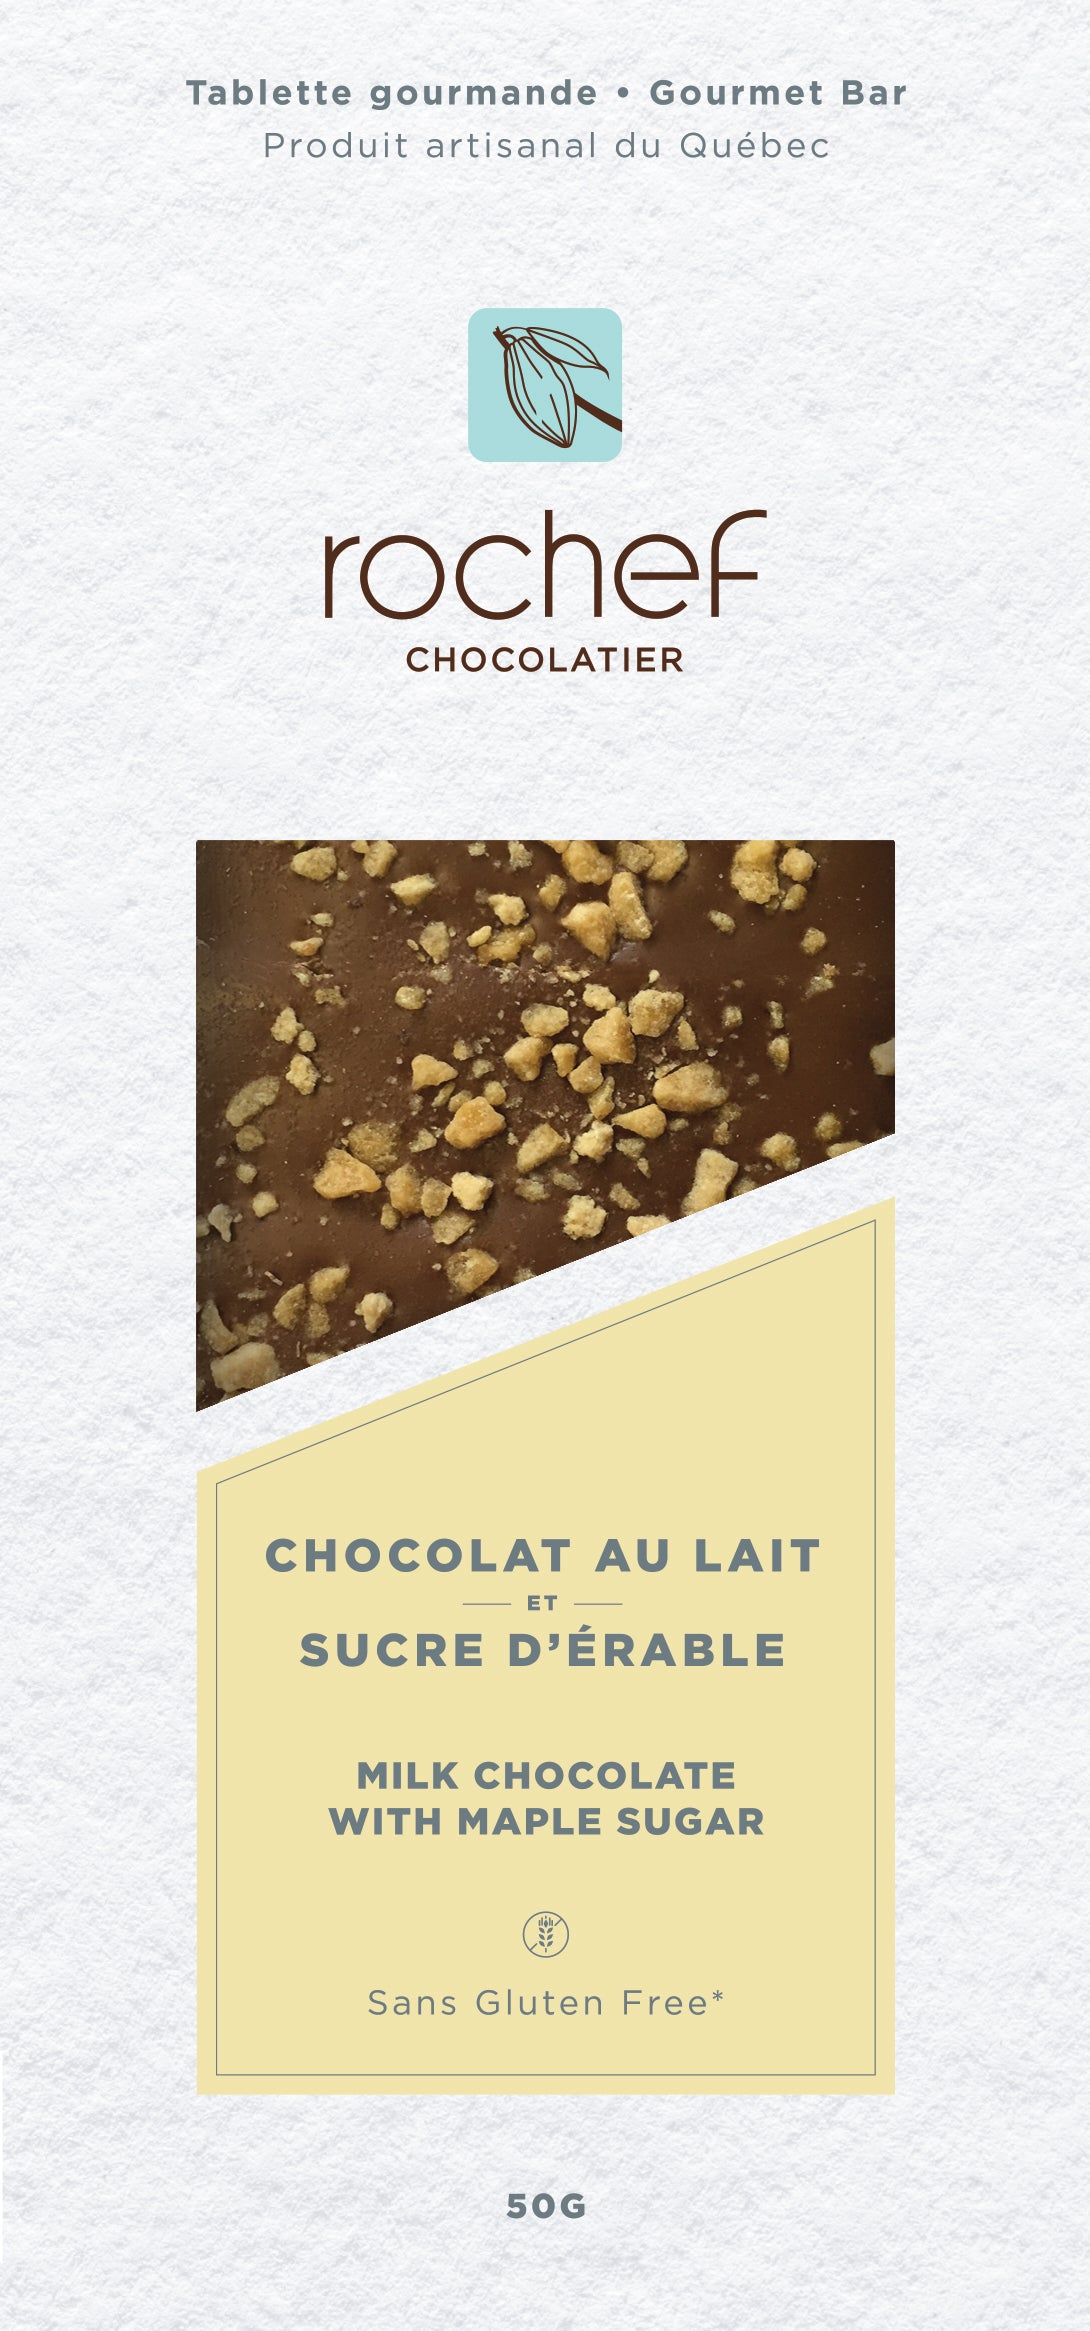 Sucre d'érable Tablette gourmande en chocolat au lait 50g.